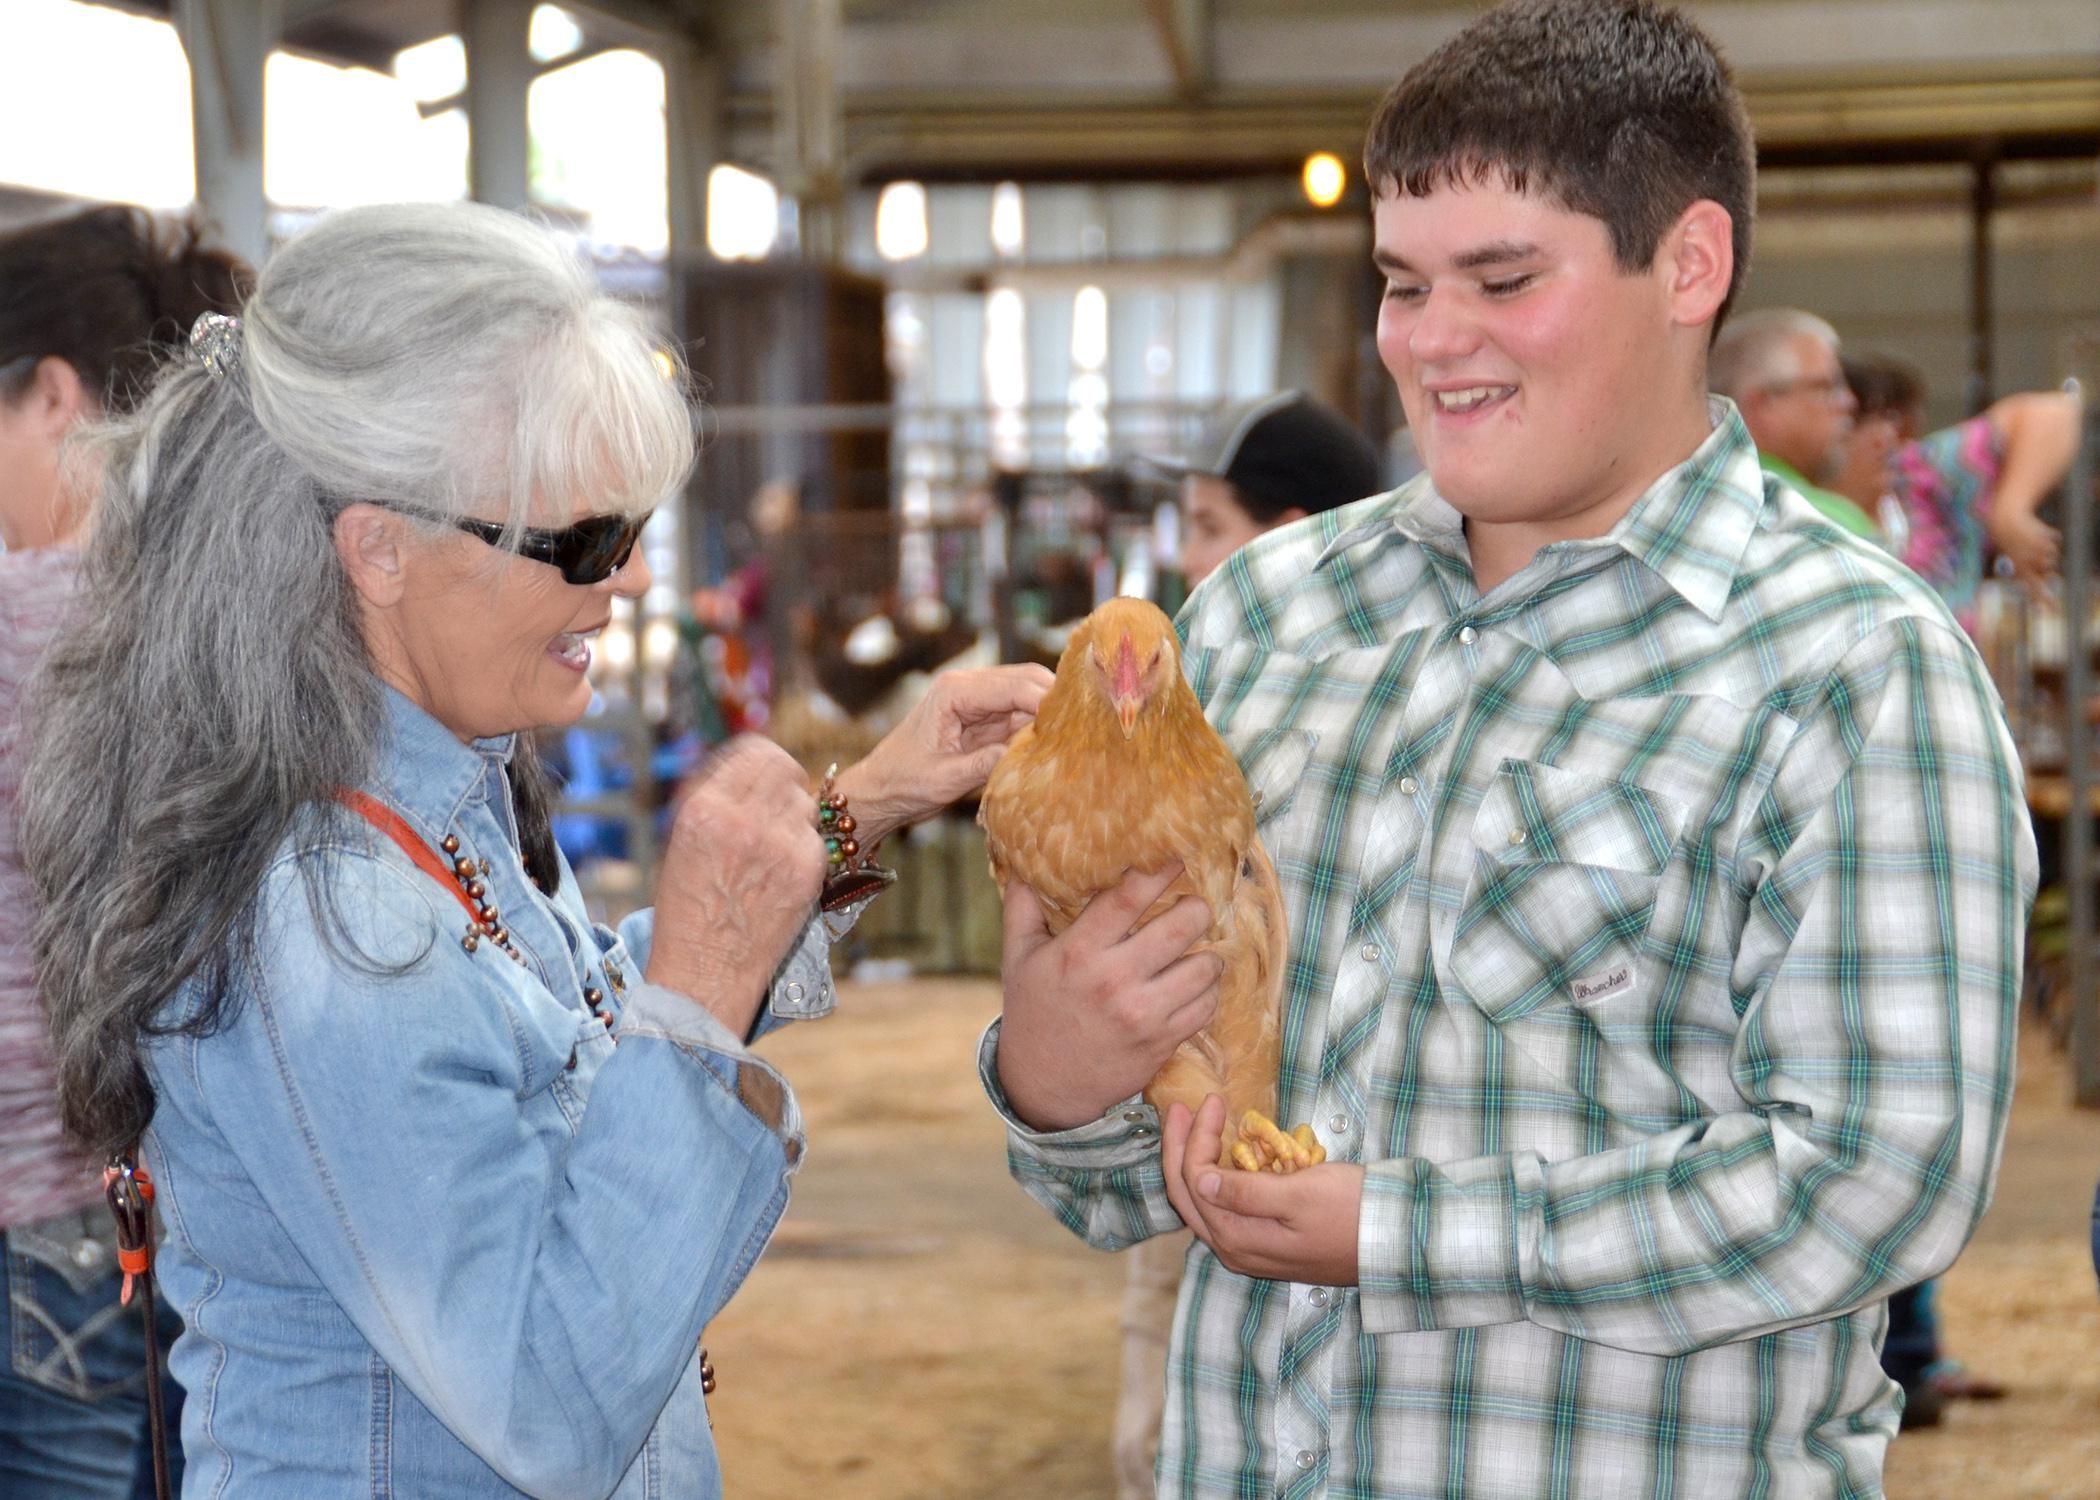 Rachel Harvey of Monticello pets Bob, a buff Plymouth Rock chicken raised by Stone County 4-H member Aaron Scara. Bob was one of six chickens Scara entered into the poultry show at the Mississippi State Fair on Oct. 12. The poultry show returned to the state fair in 2013 after a 30-year absence. (Photo by MSU Ag Communications/Susan Collins-Smith)